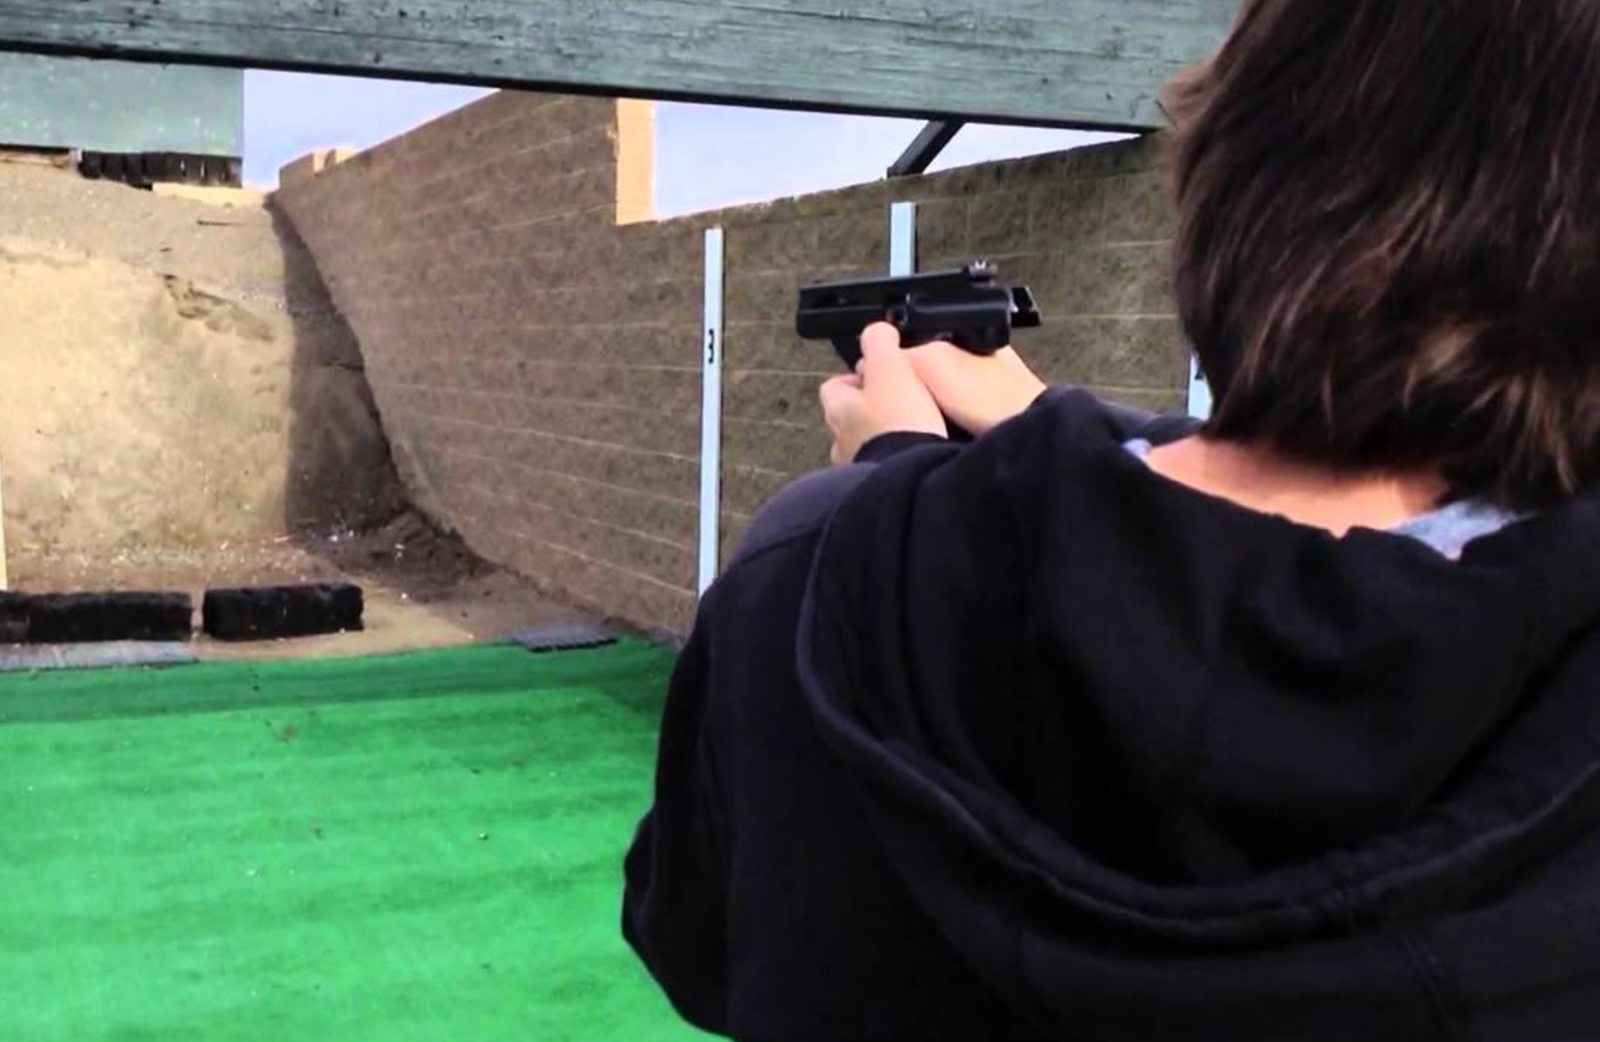 A woman shooting a gun at a target on a gun range..